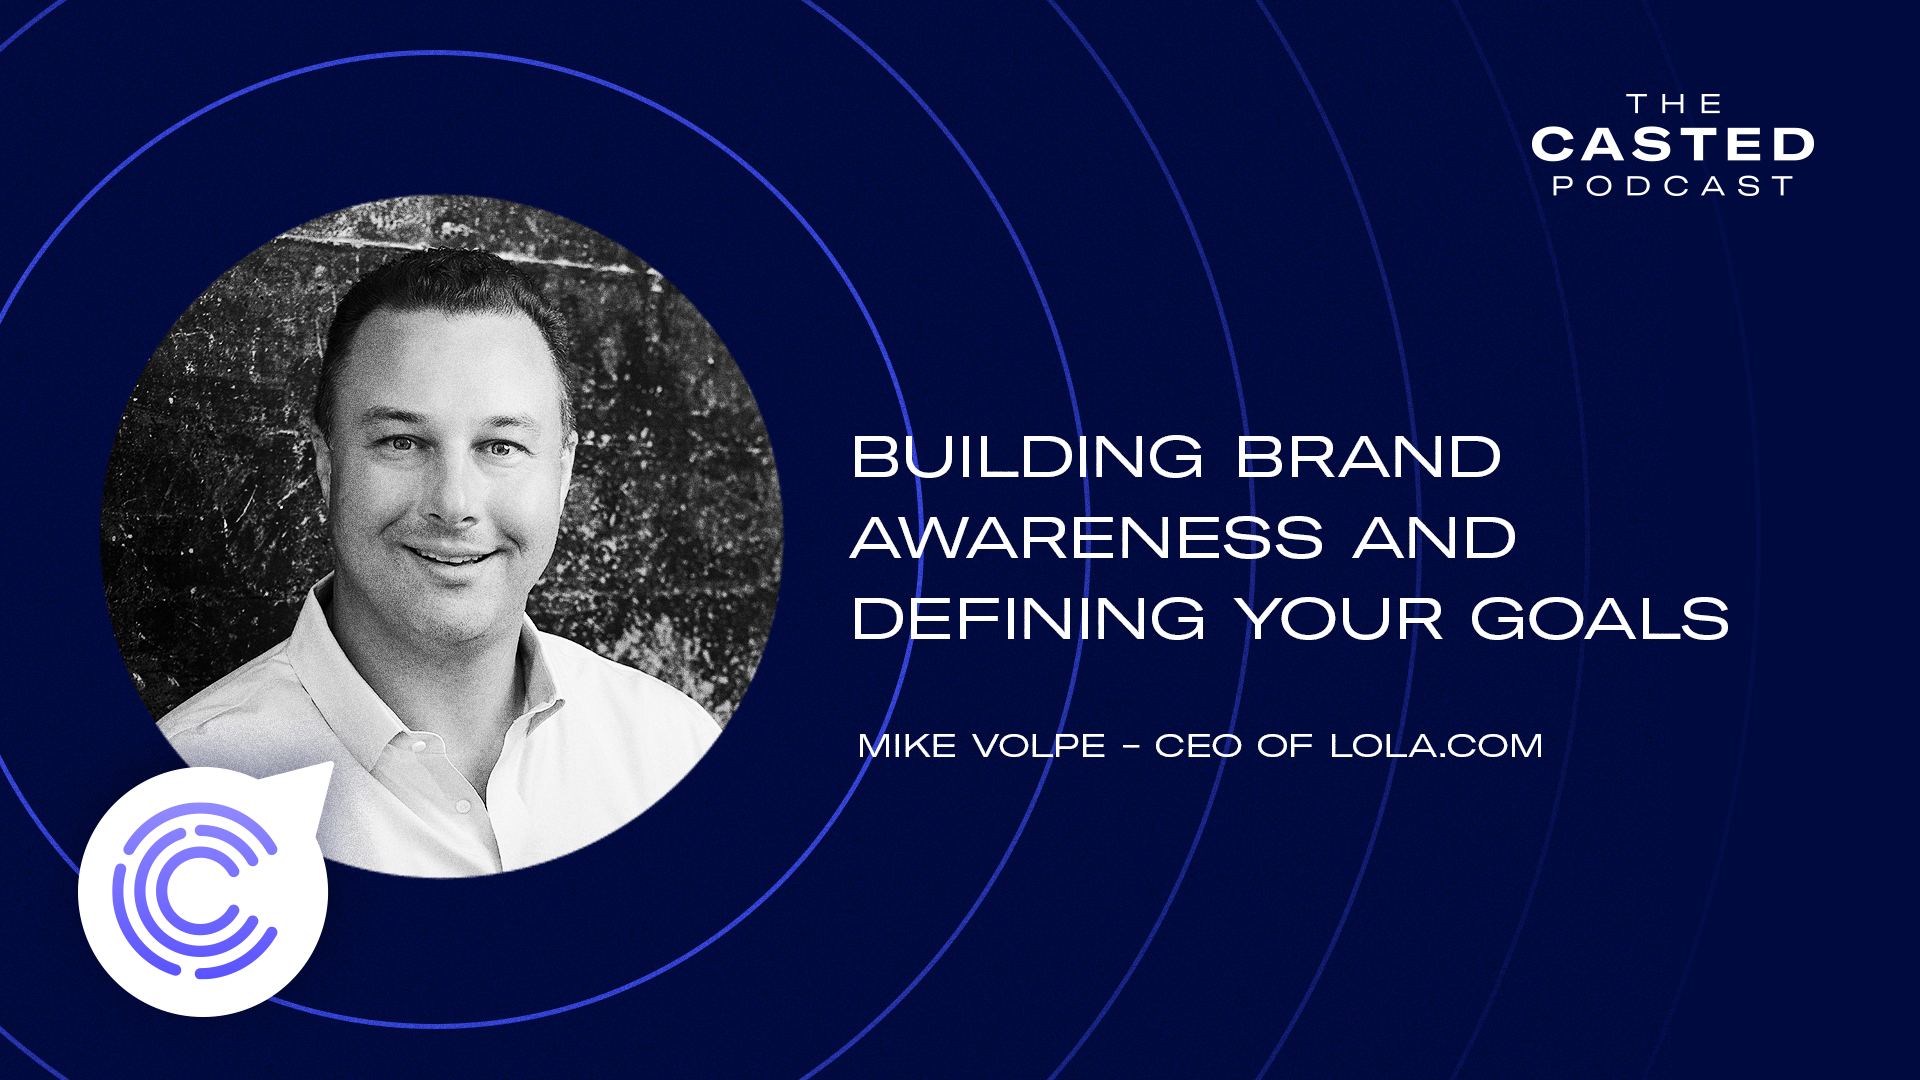 Building Brand Awareness and Defining Your Goals with Lola.com's Mike Volpe